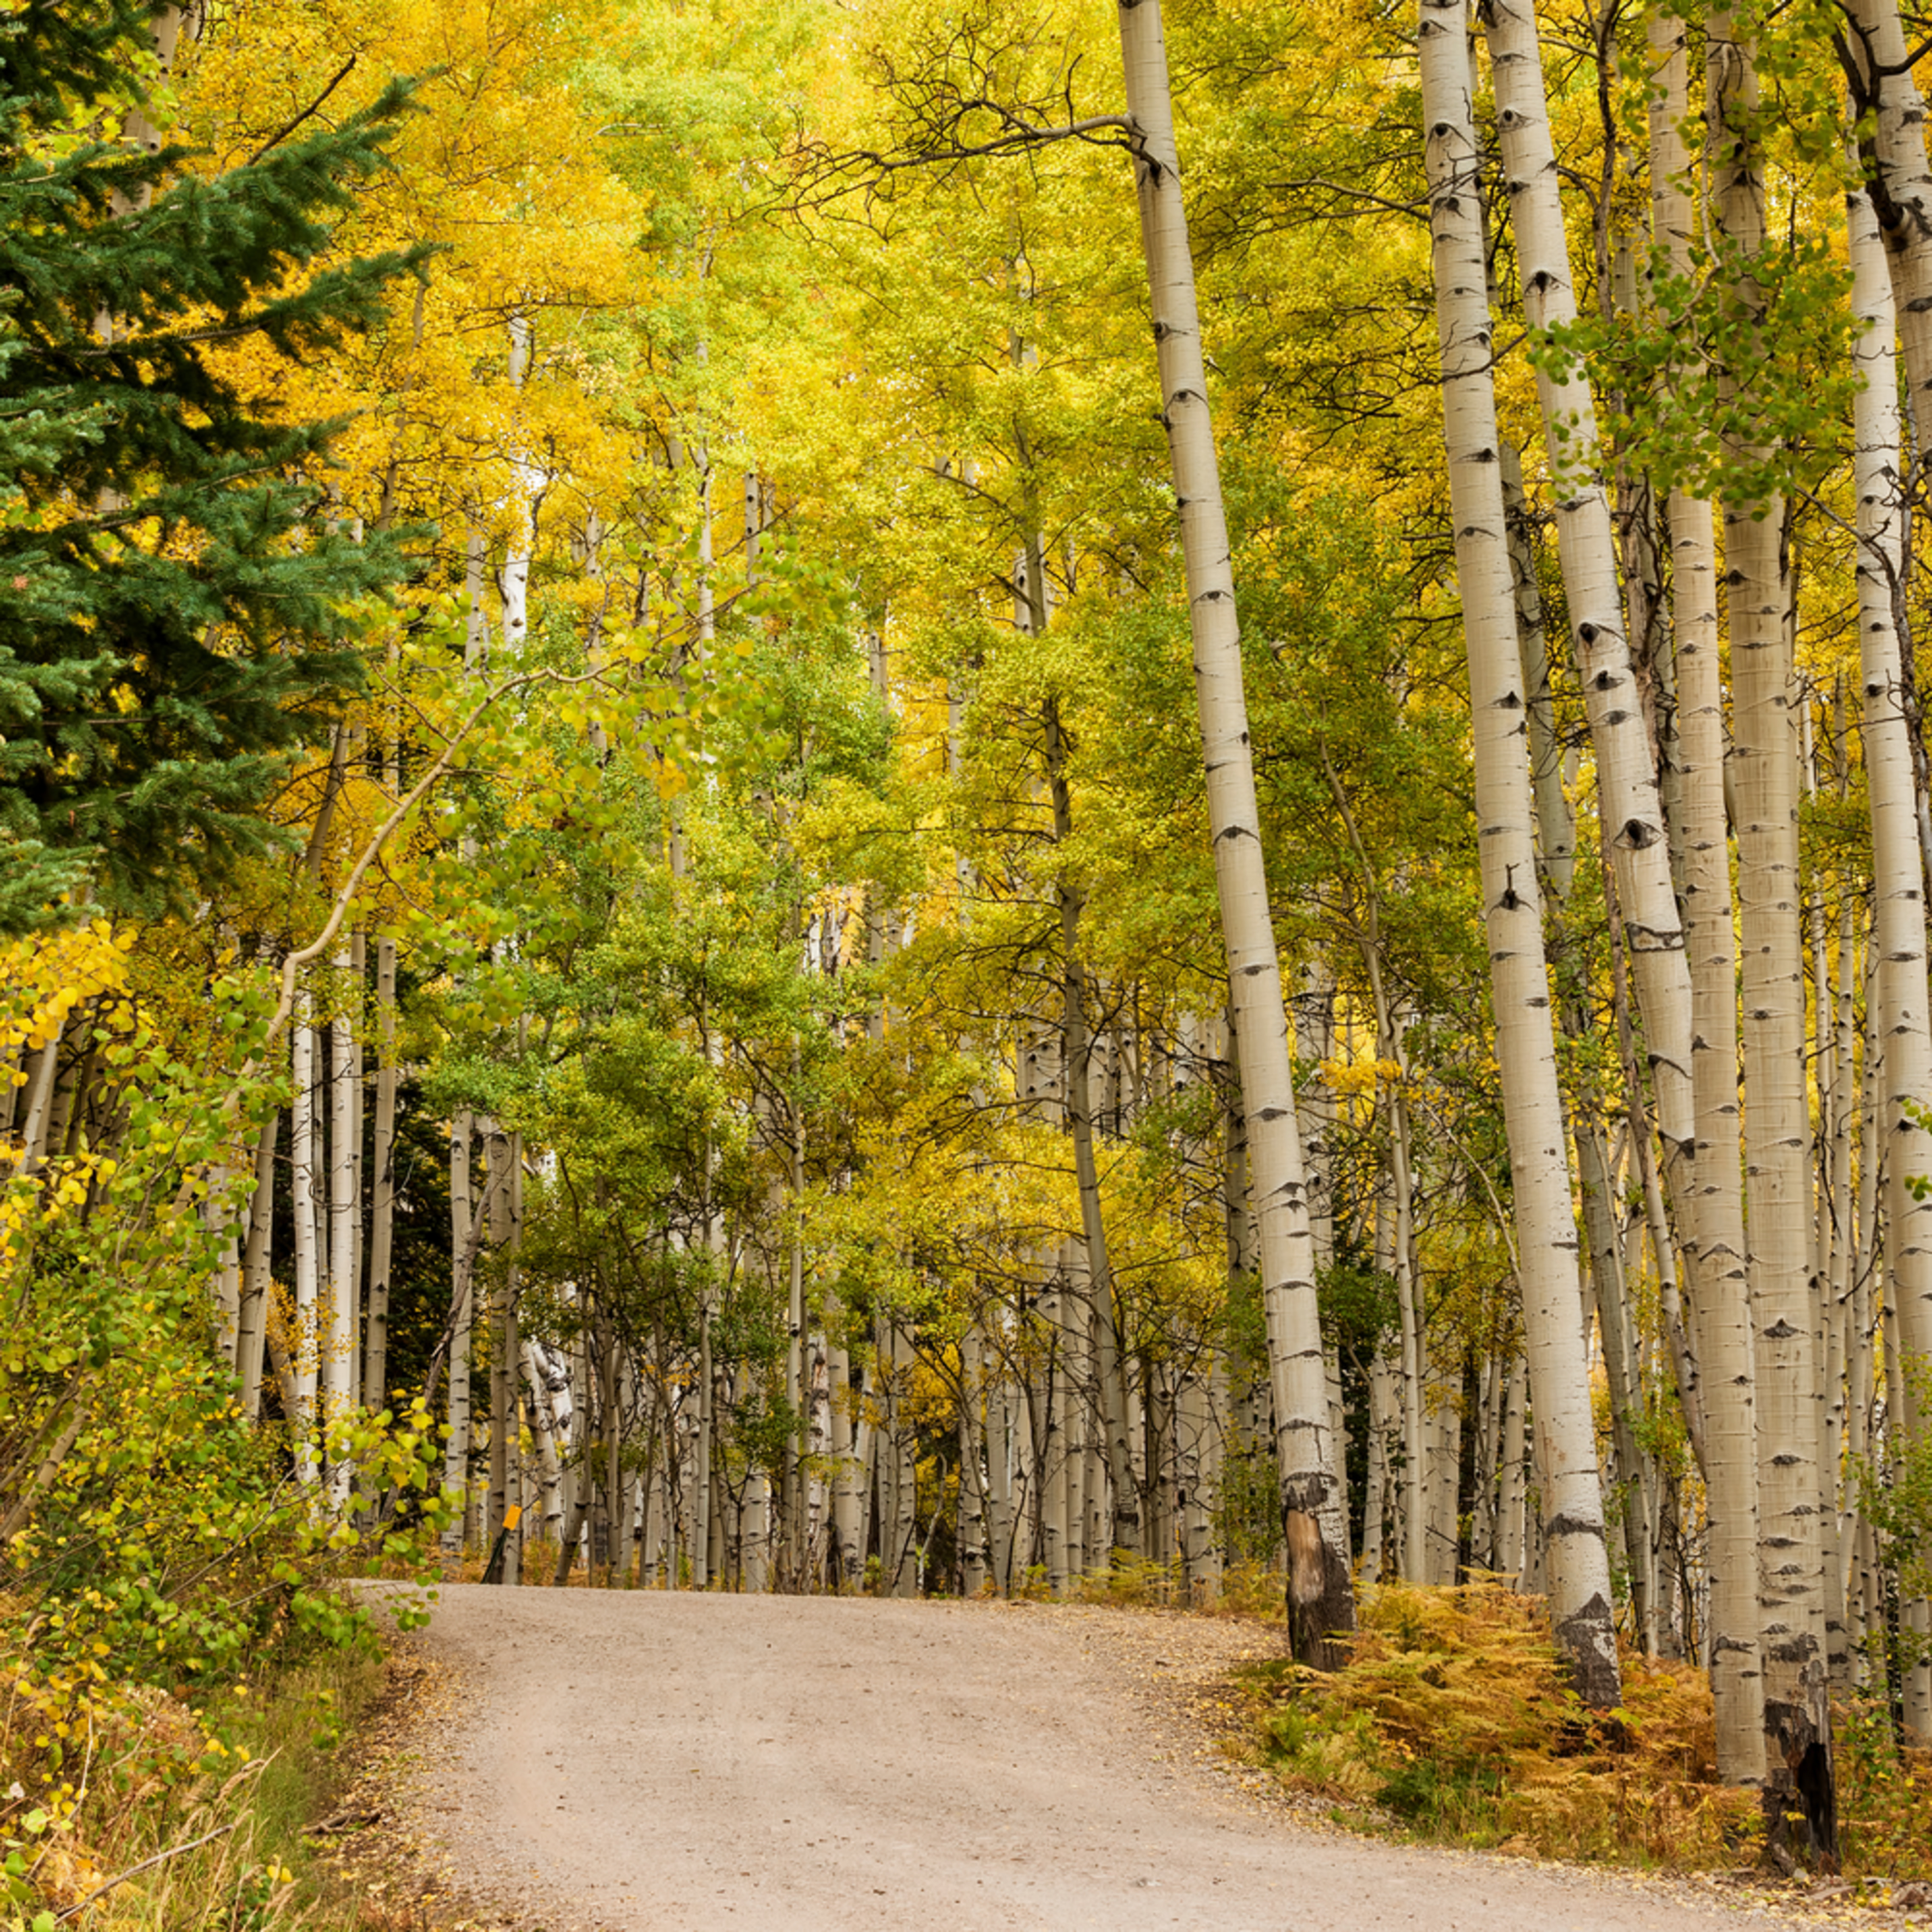 A road through the aspens gigapixel scale 1 40x epjpdm